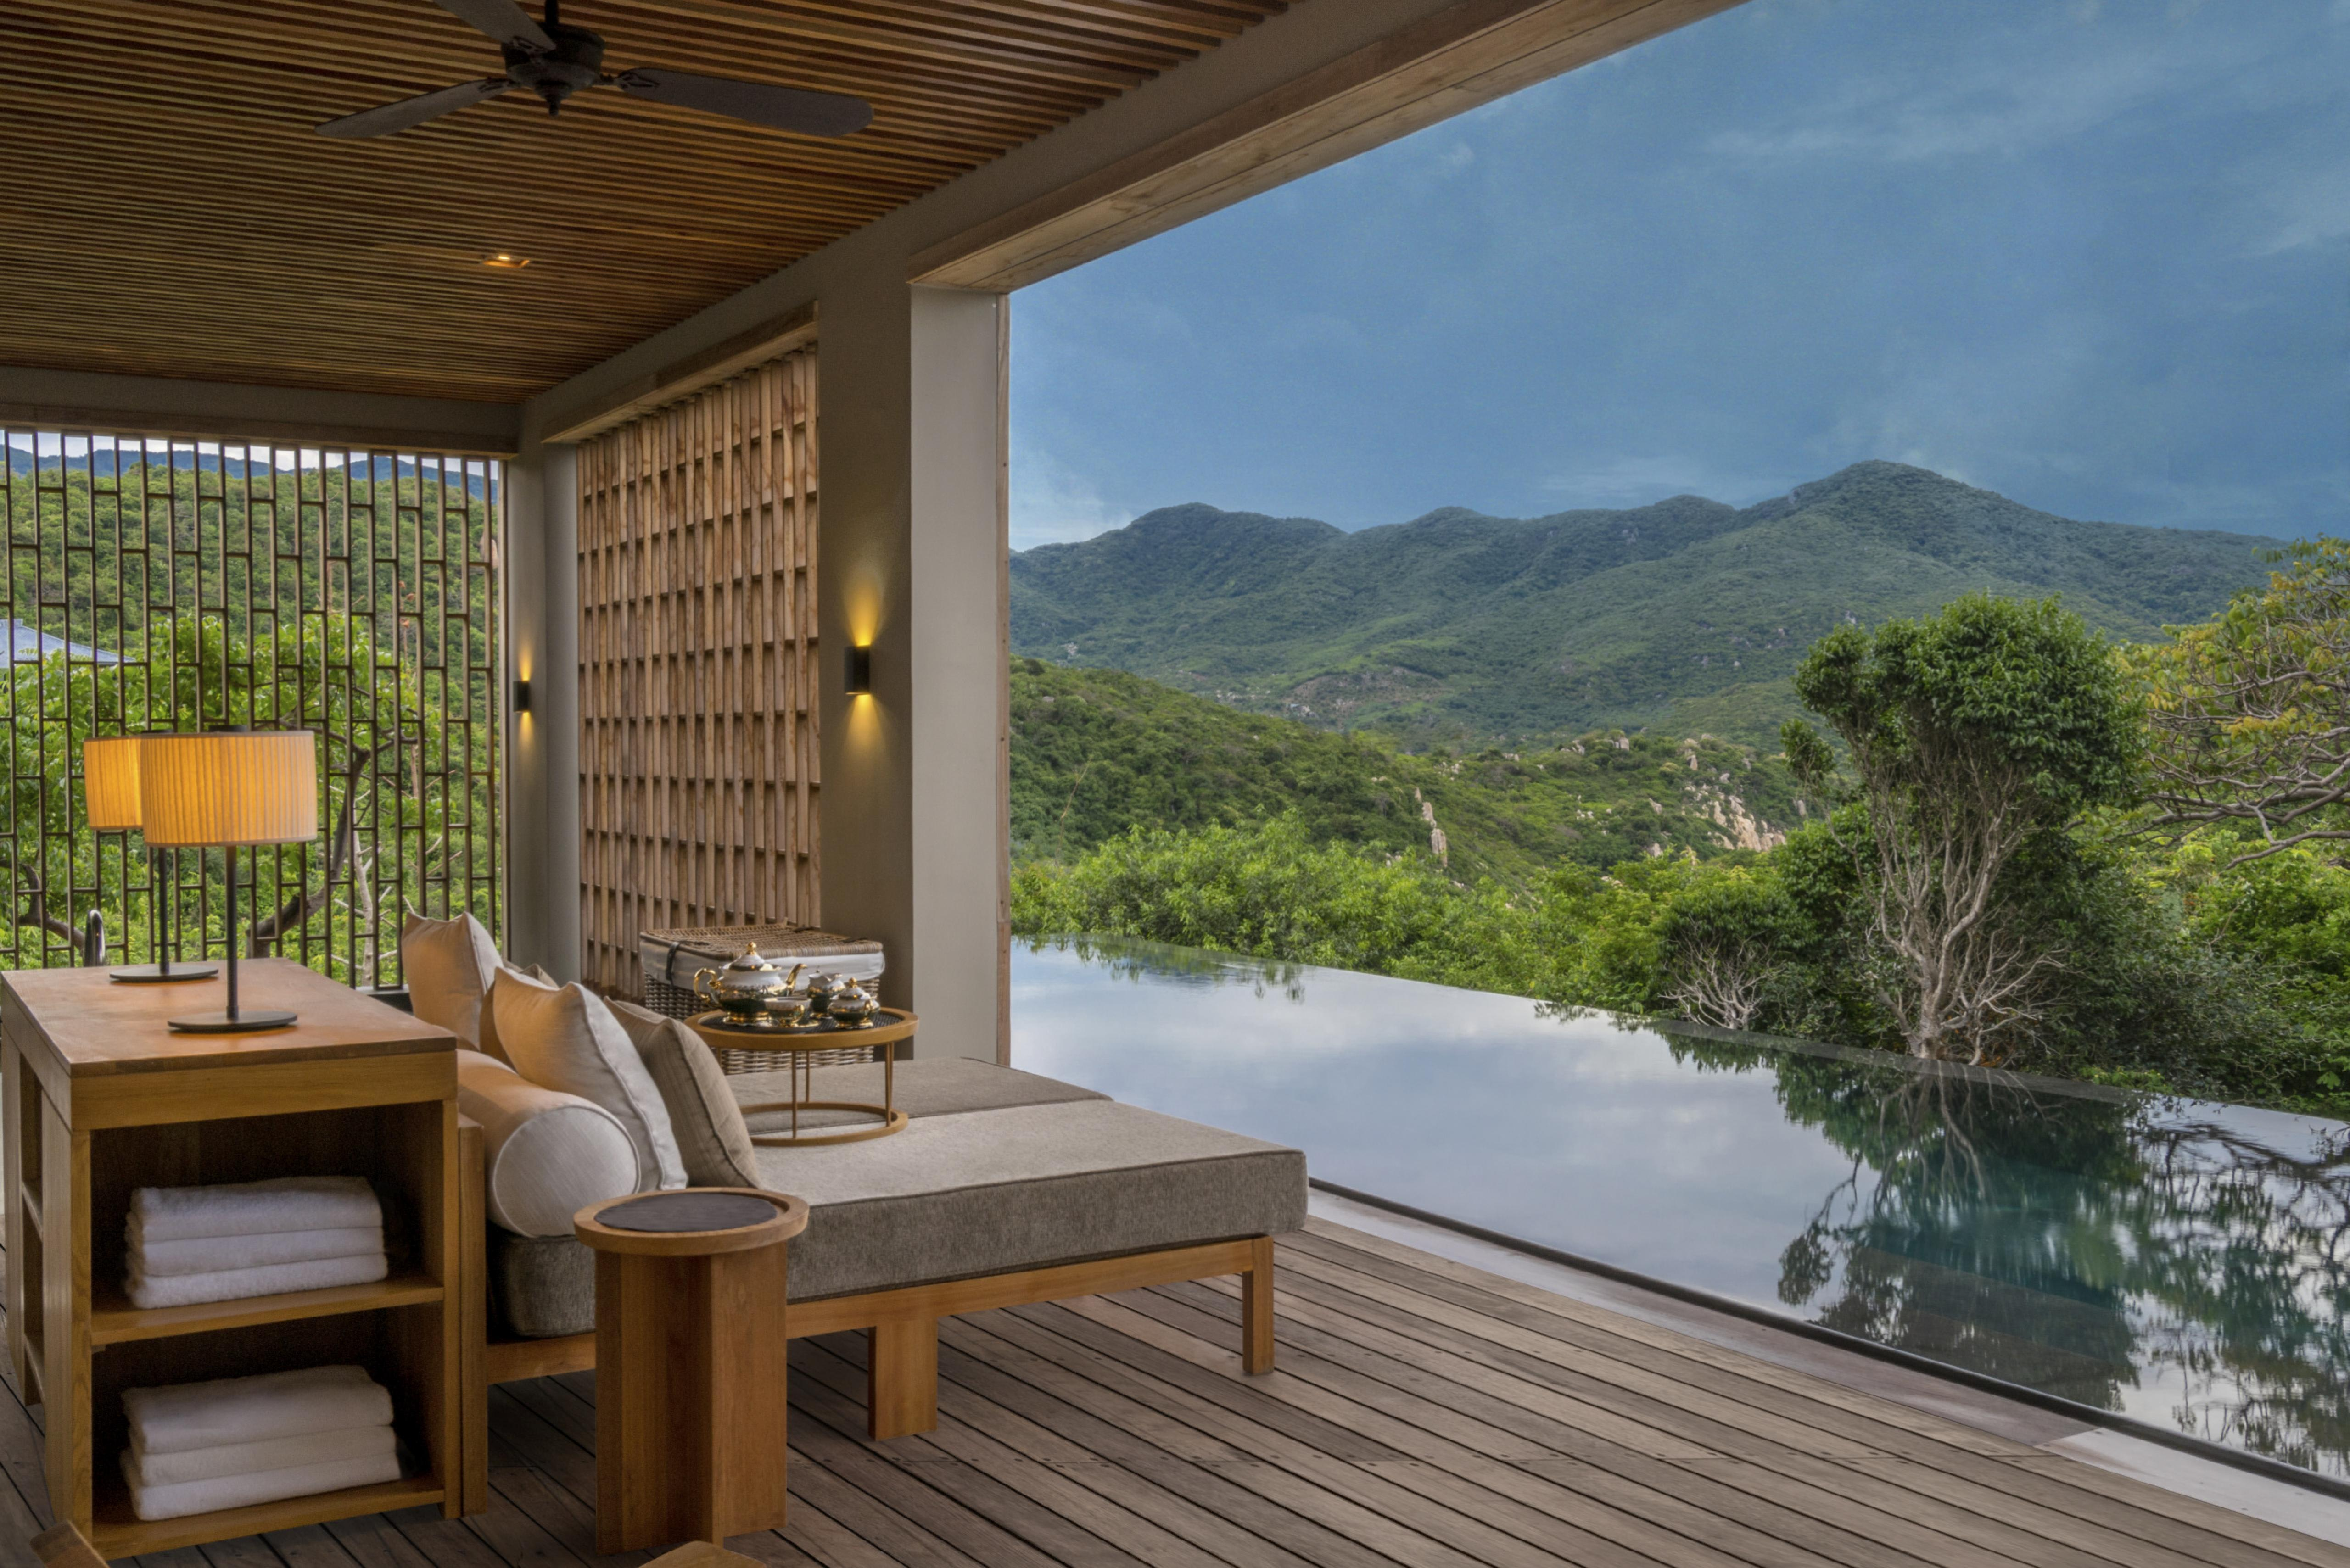 wooden open air seating, overlooking infinity pool and green mountains